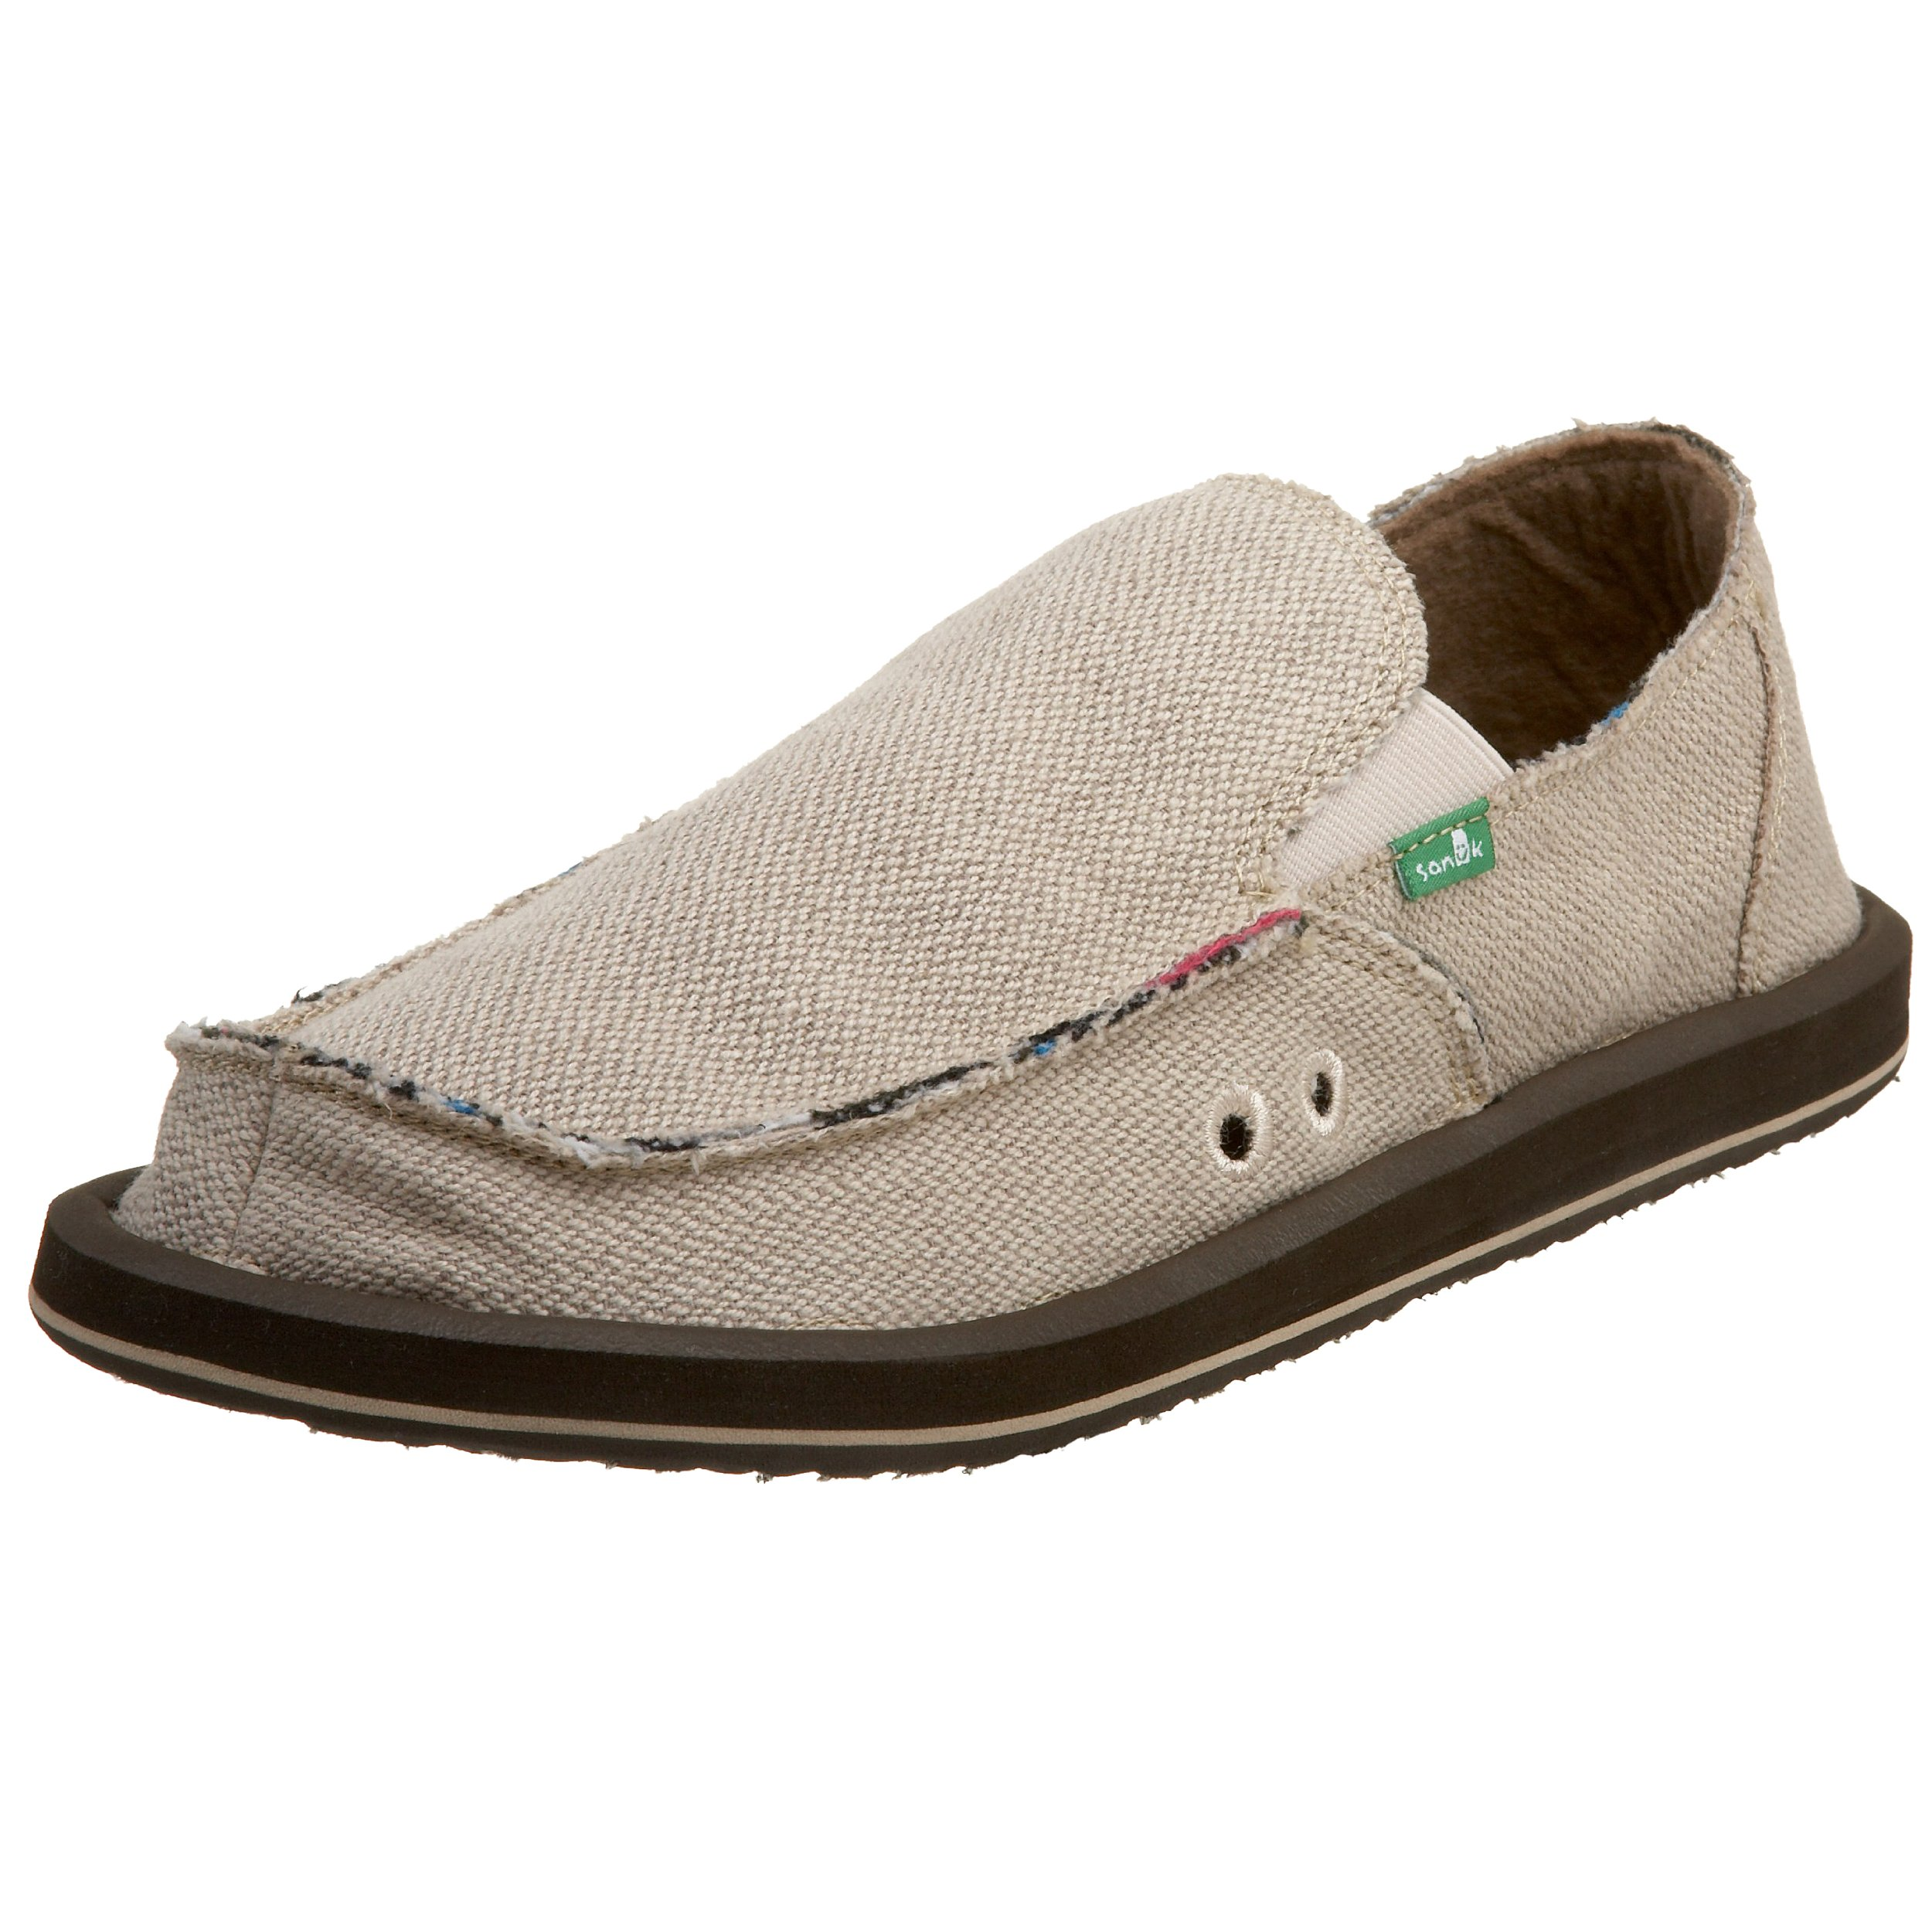 Sanuk Men's Hemp Slip-On,Natural,11 M by Sanuk